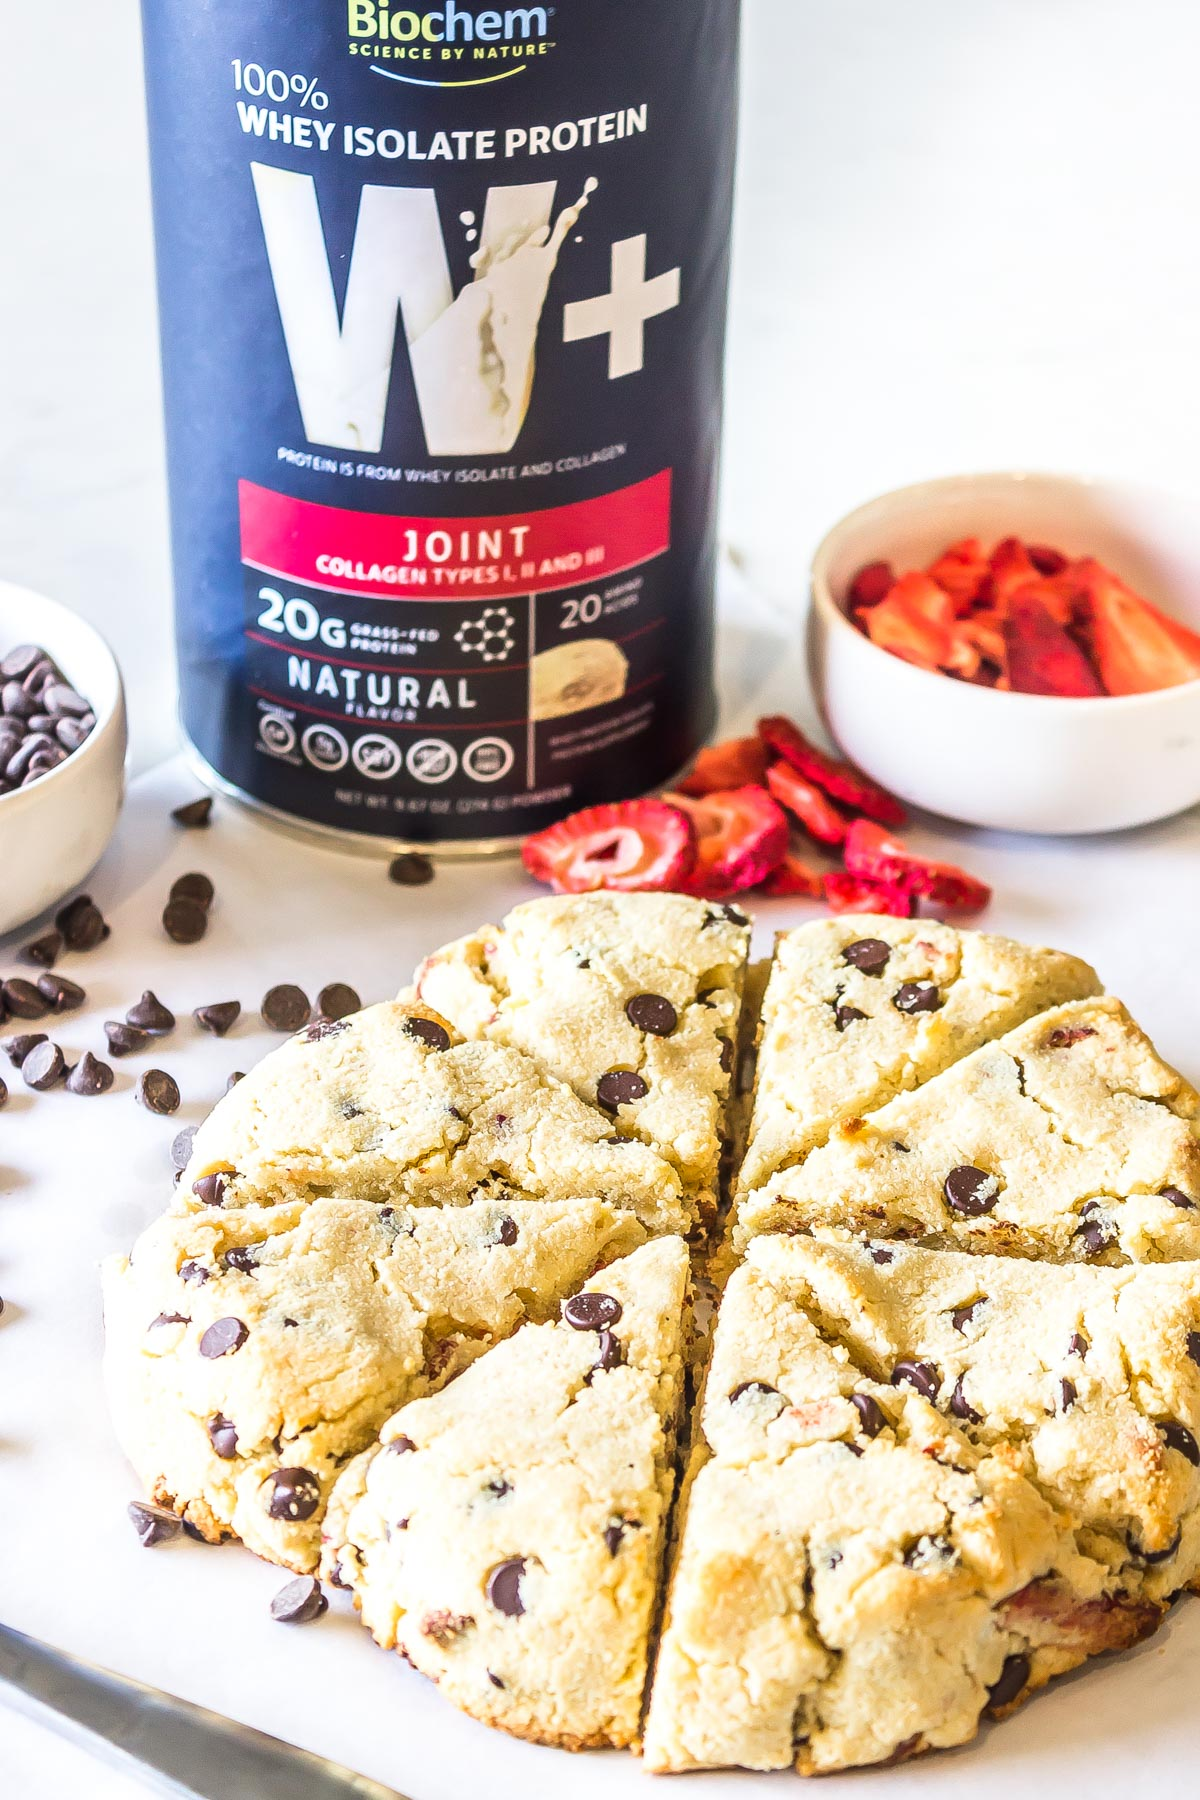 Strawberry Chocolate Chip Scones flanked by chicolate chips and dehydrated strawberries with a Cannister of Biochem Whey protein isolate plus joint powder prominently featured